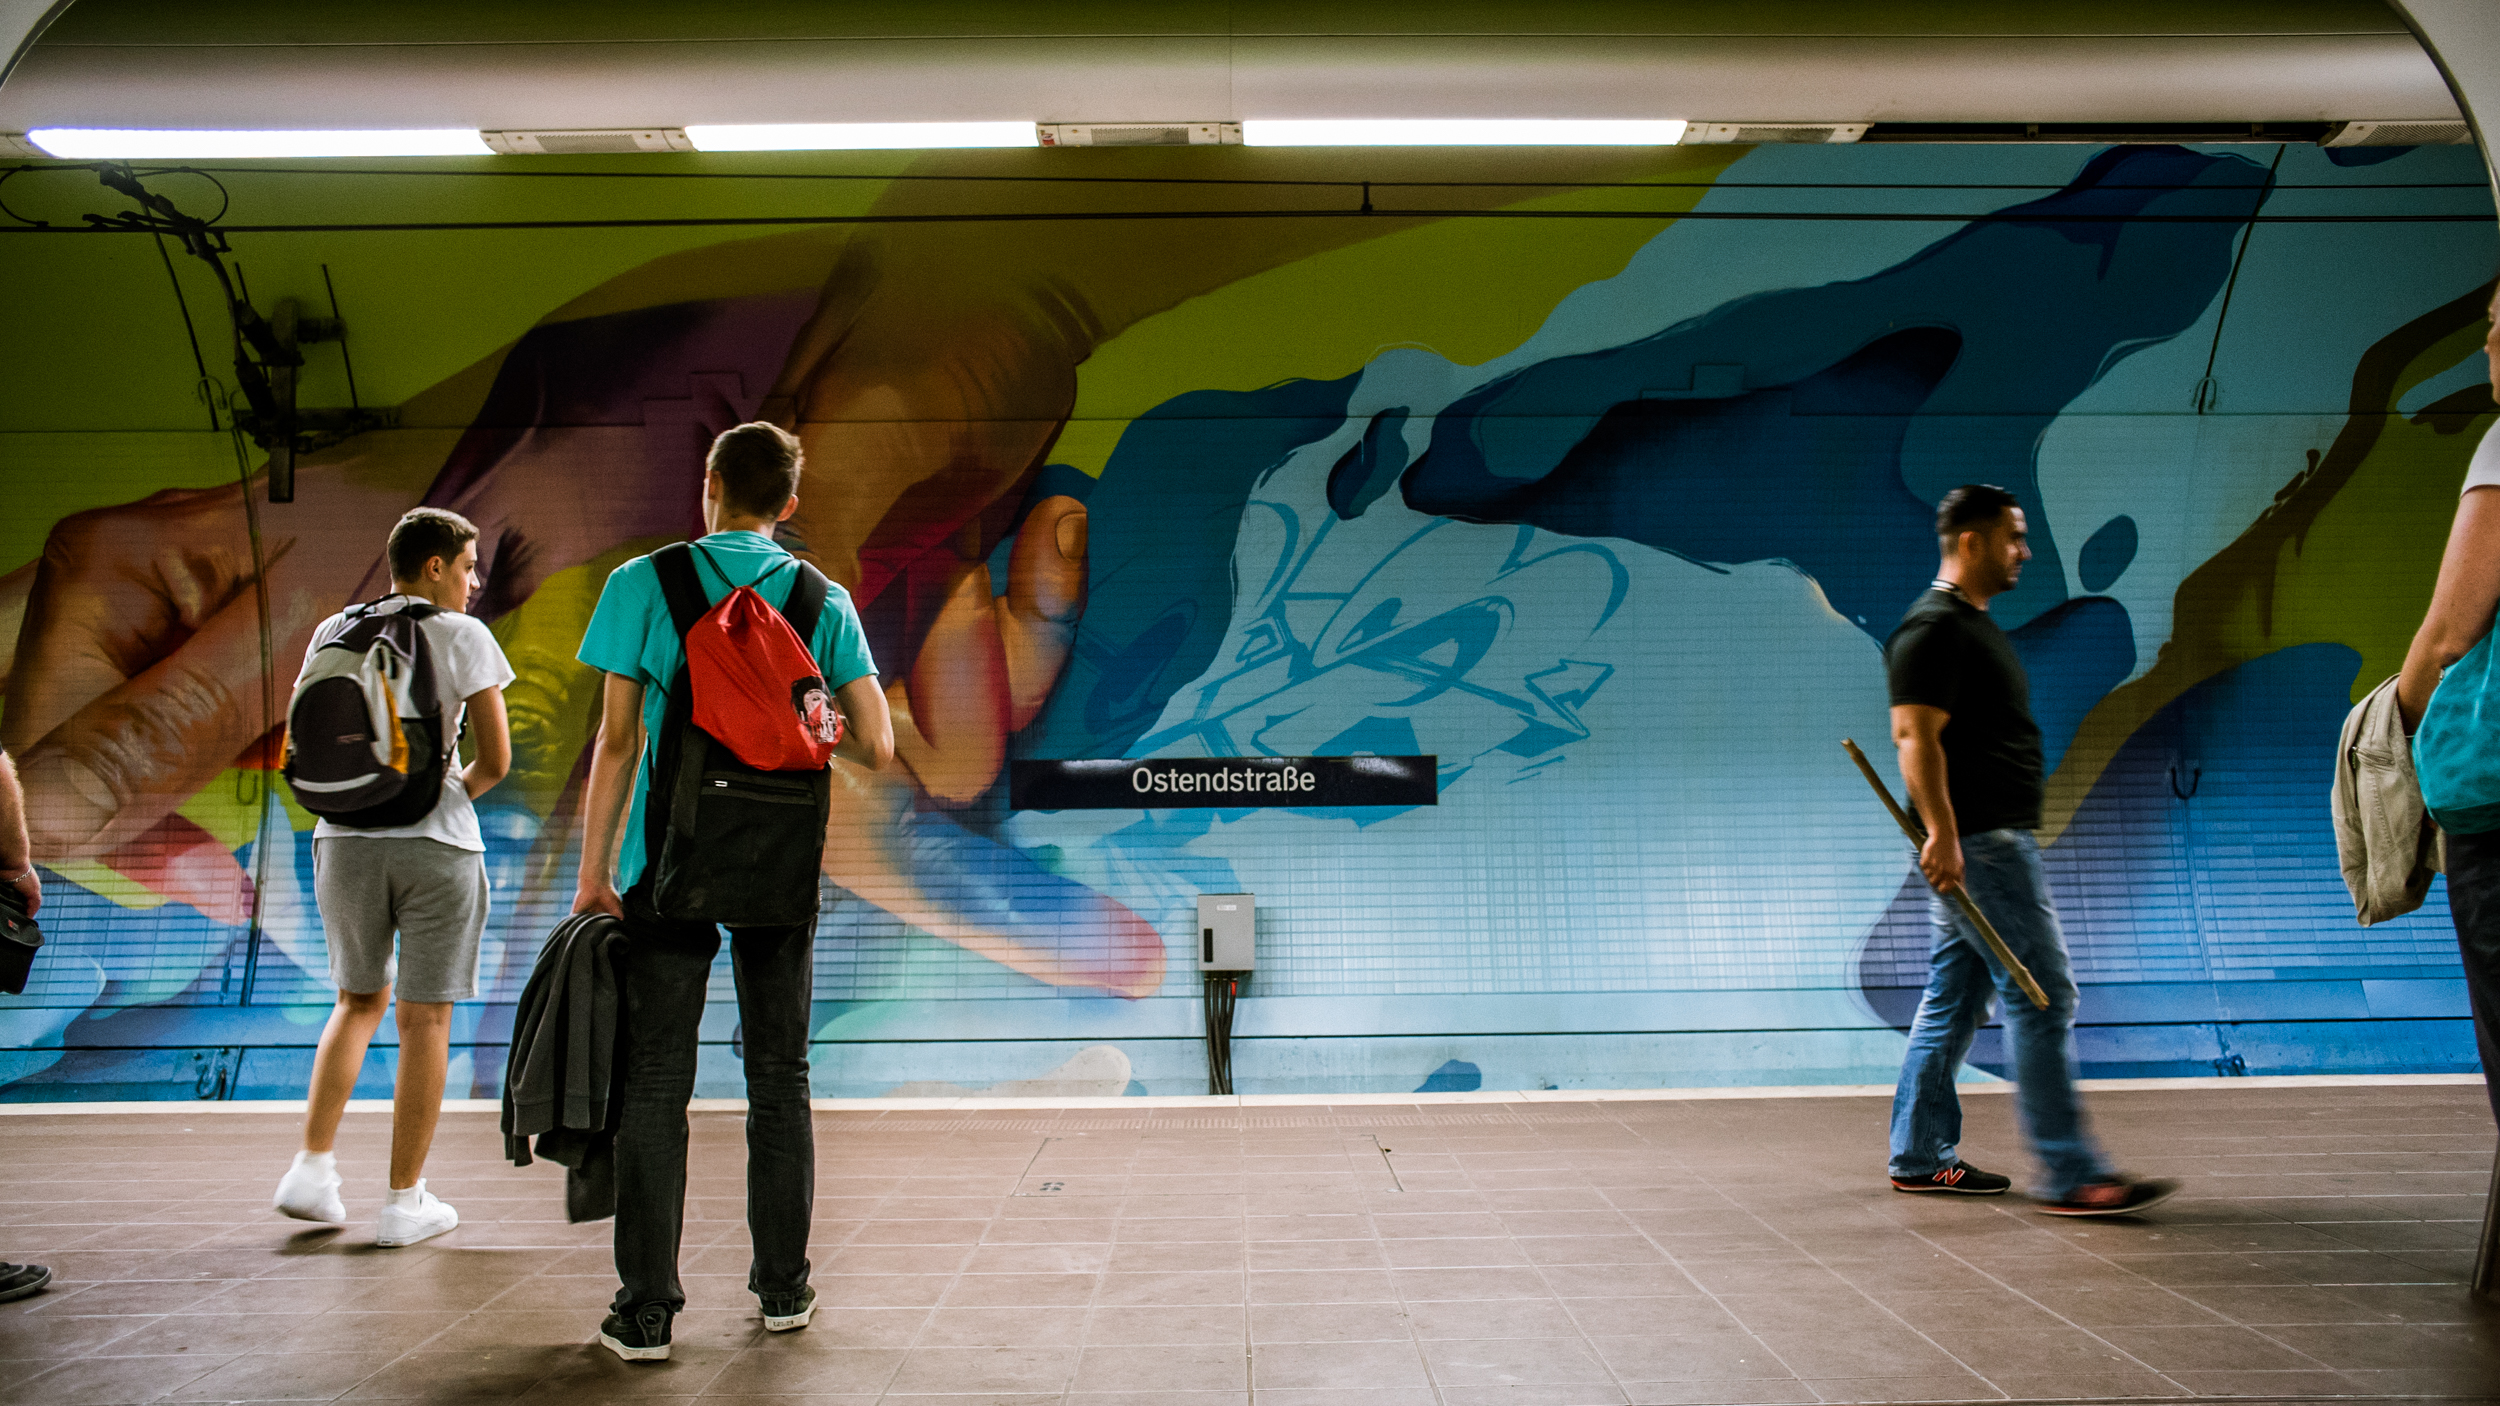 A work by Does - Ostendstrasse frankfurt germany tunnel 25